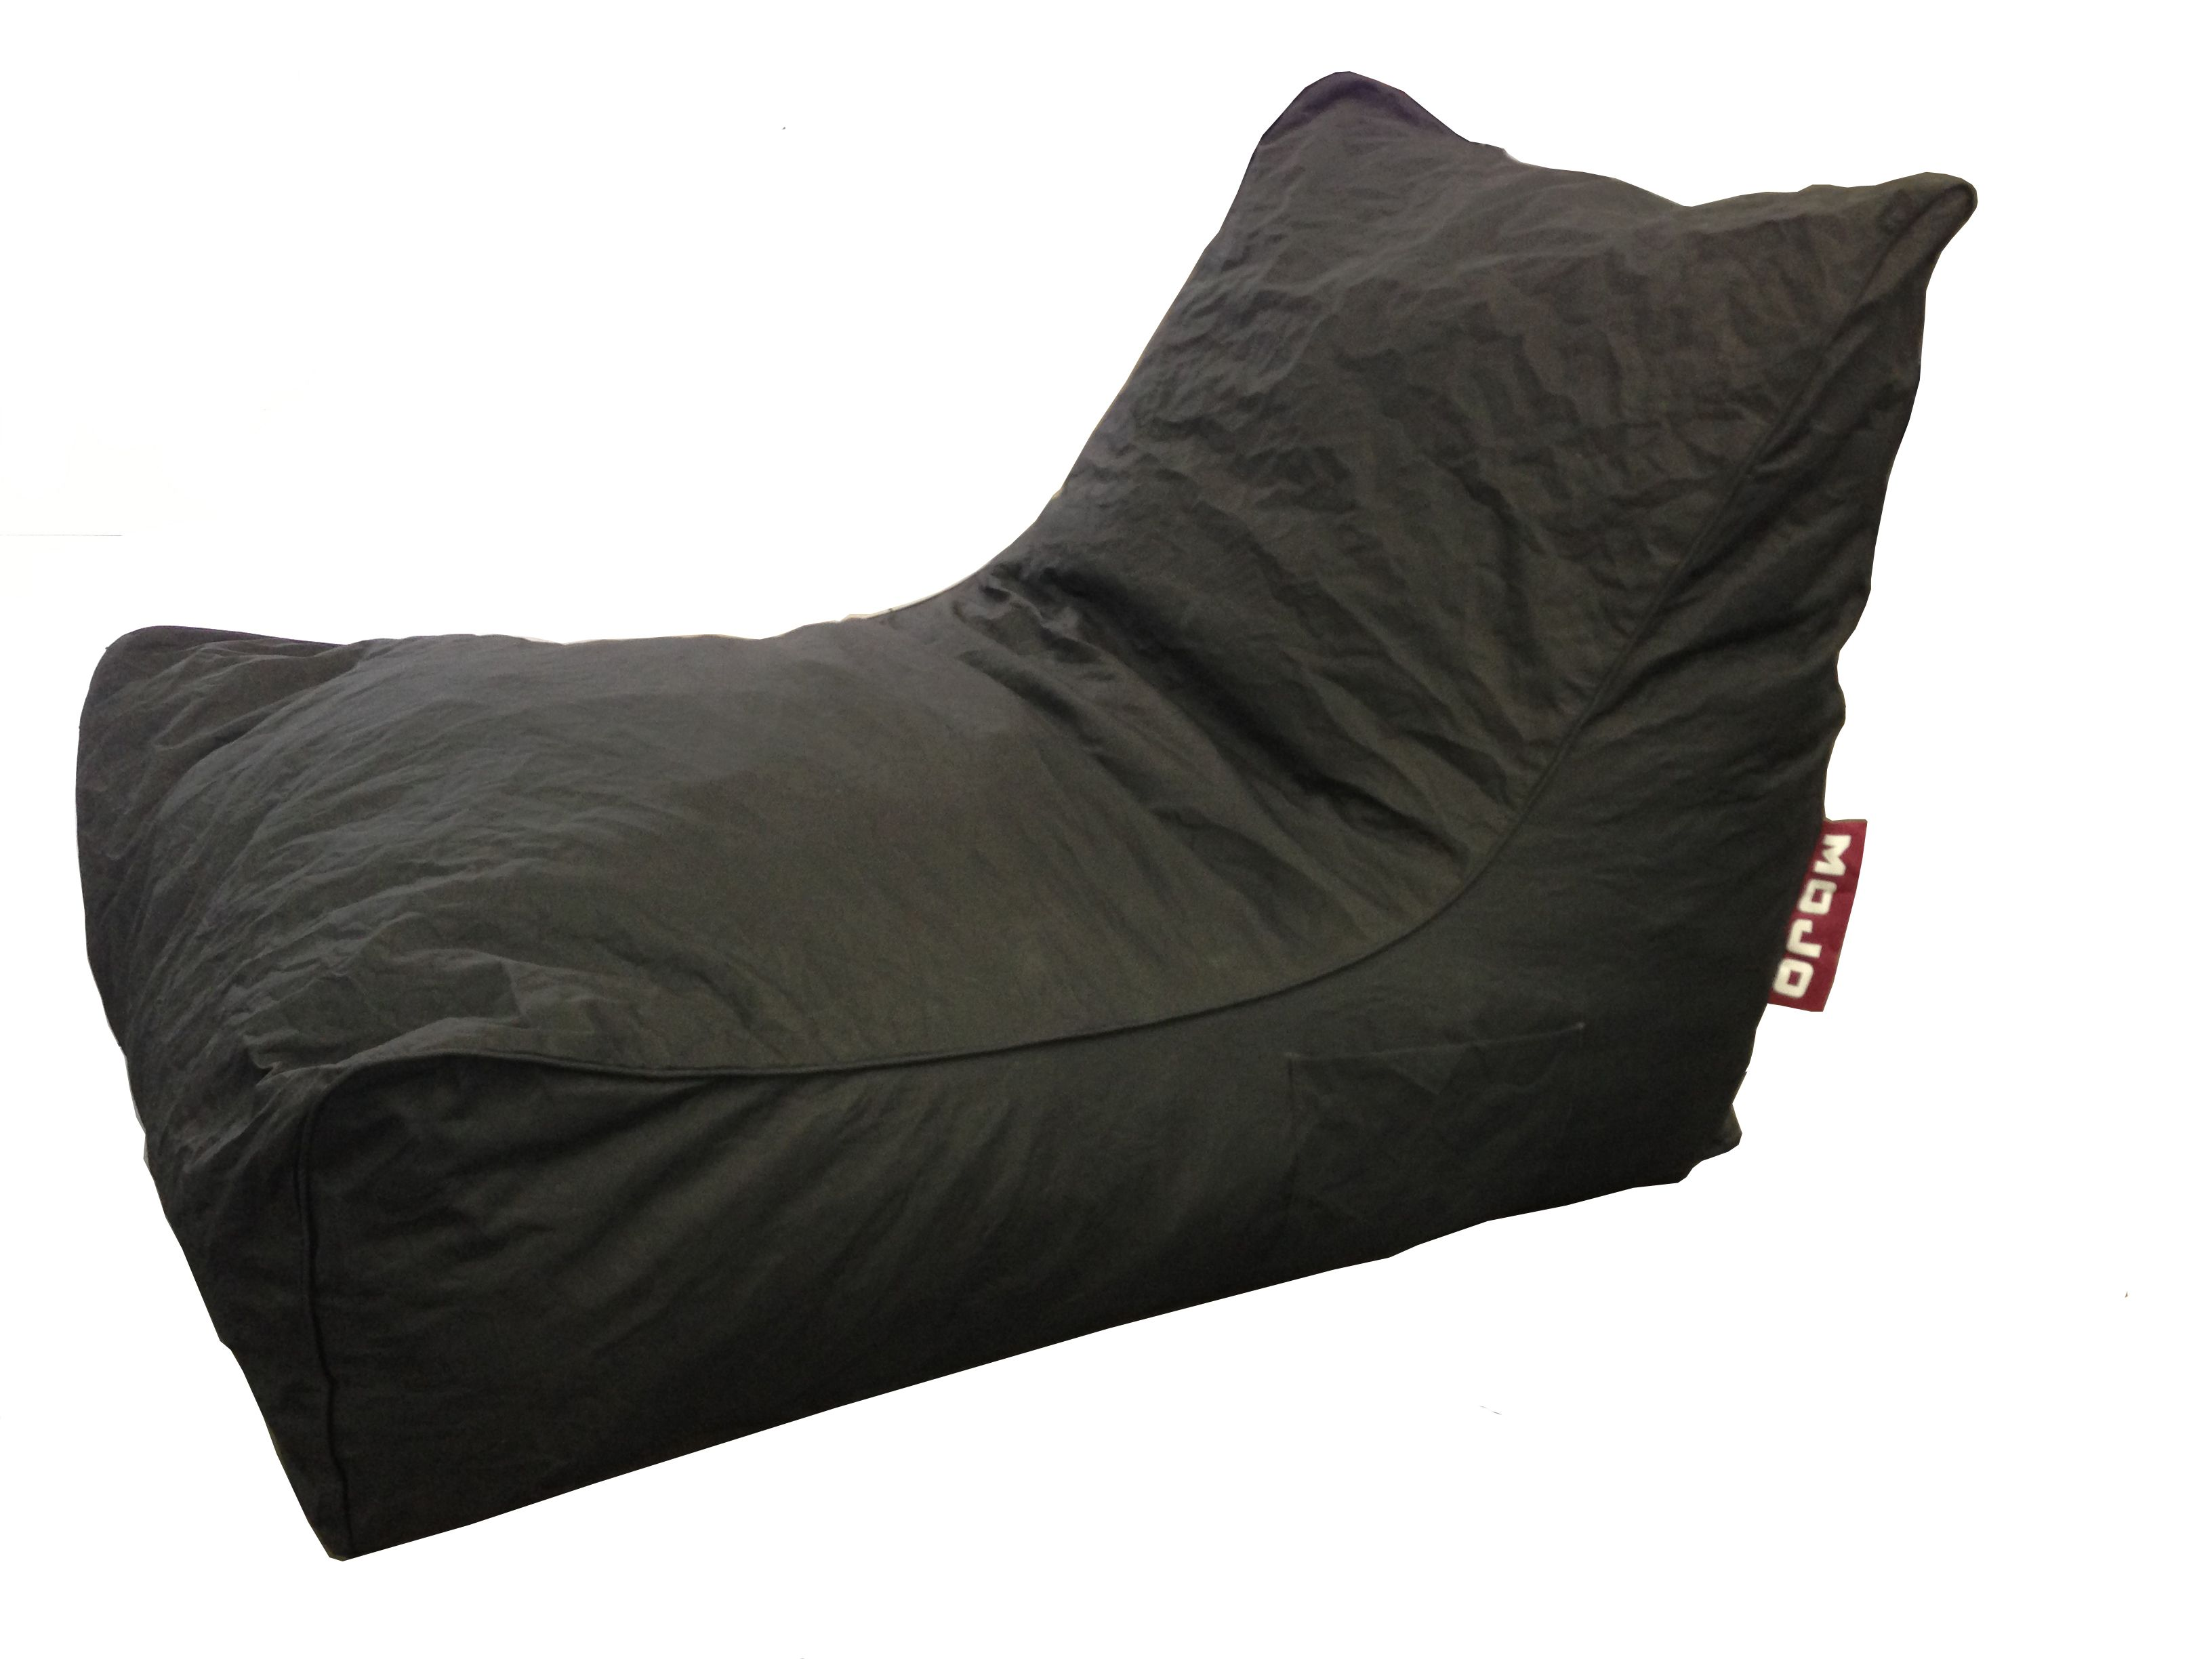 Bunnings Drop Cloth Mojo Maxi Lounge Outdoor Bean Bag Mjof0004 Bunnings Warehouse